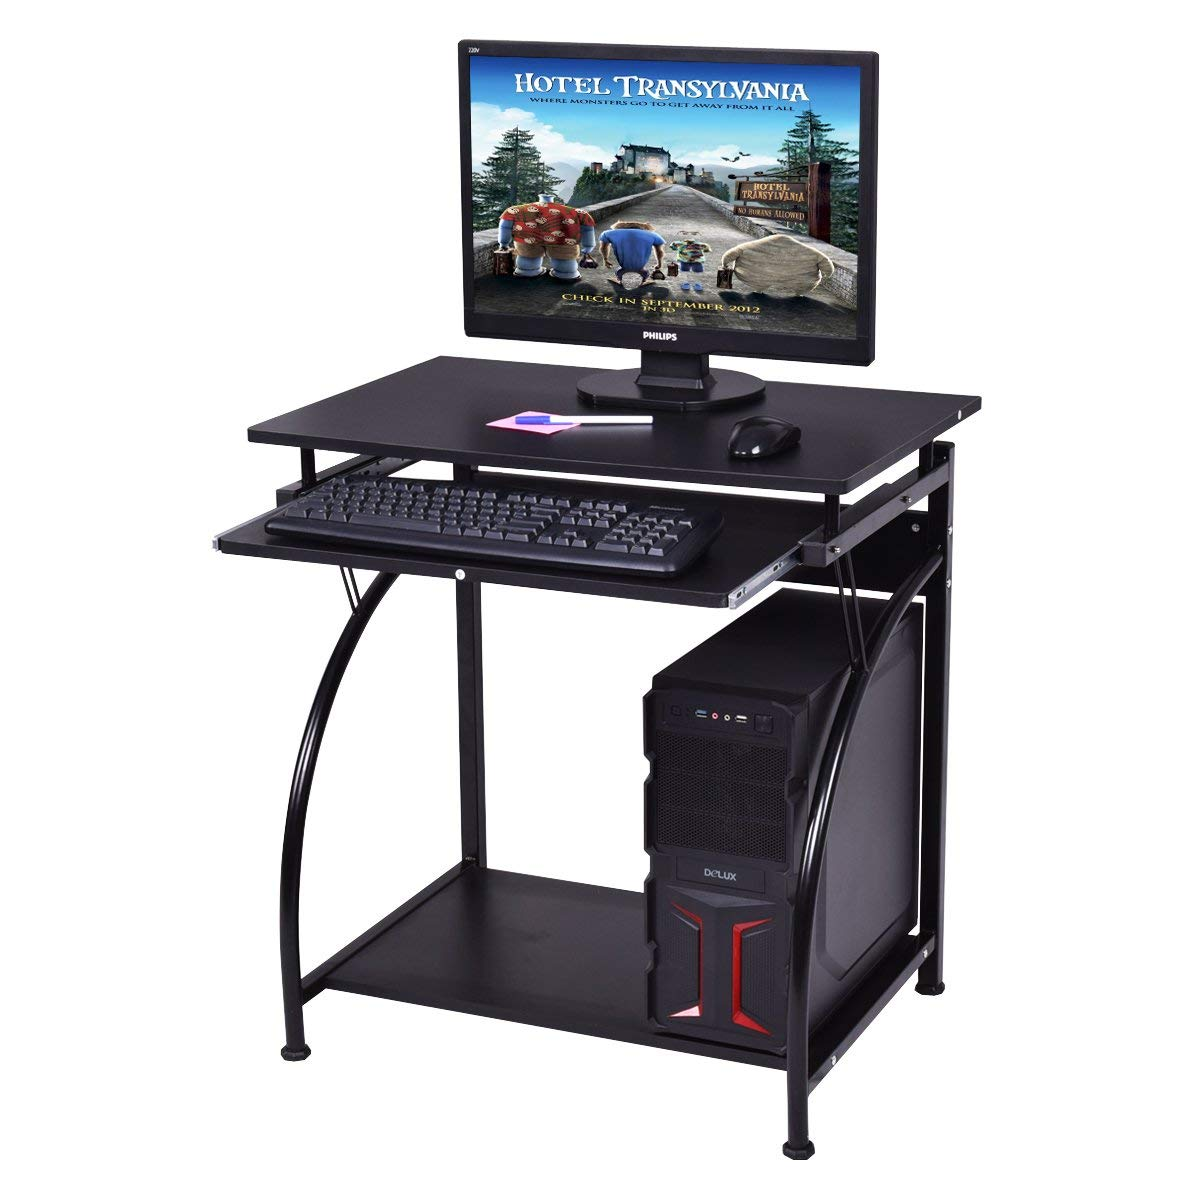 Tangkula Computer Desk, Home Office PC Laptop Workstation with Pull Out Keyboard Tray, Study Table Desk for Small Place